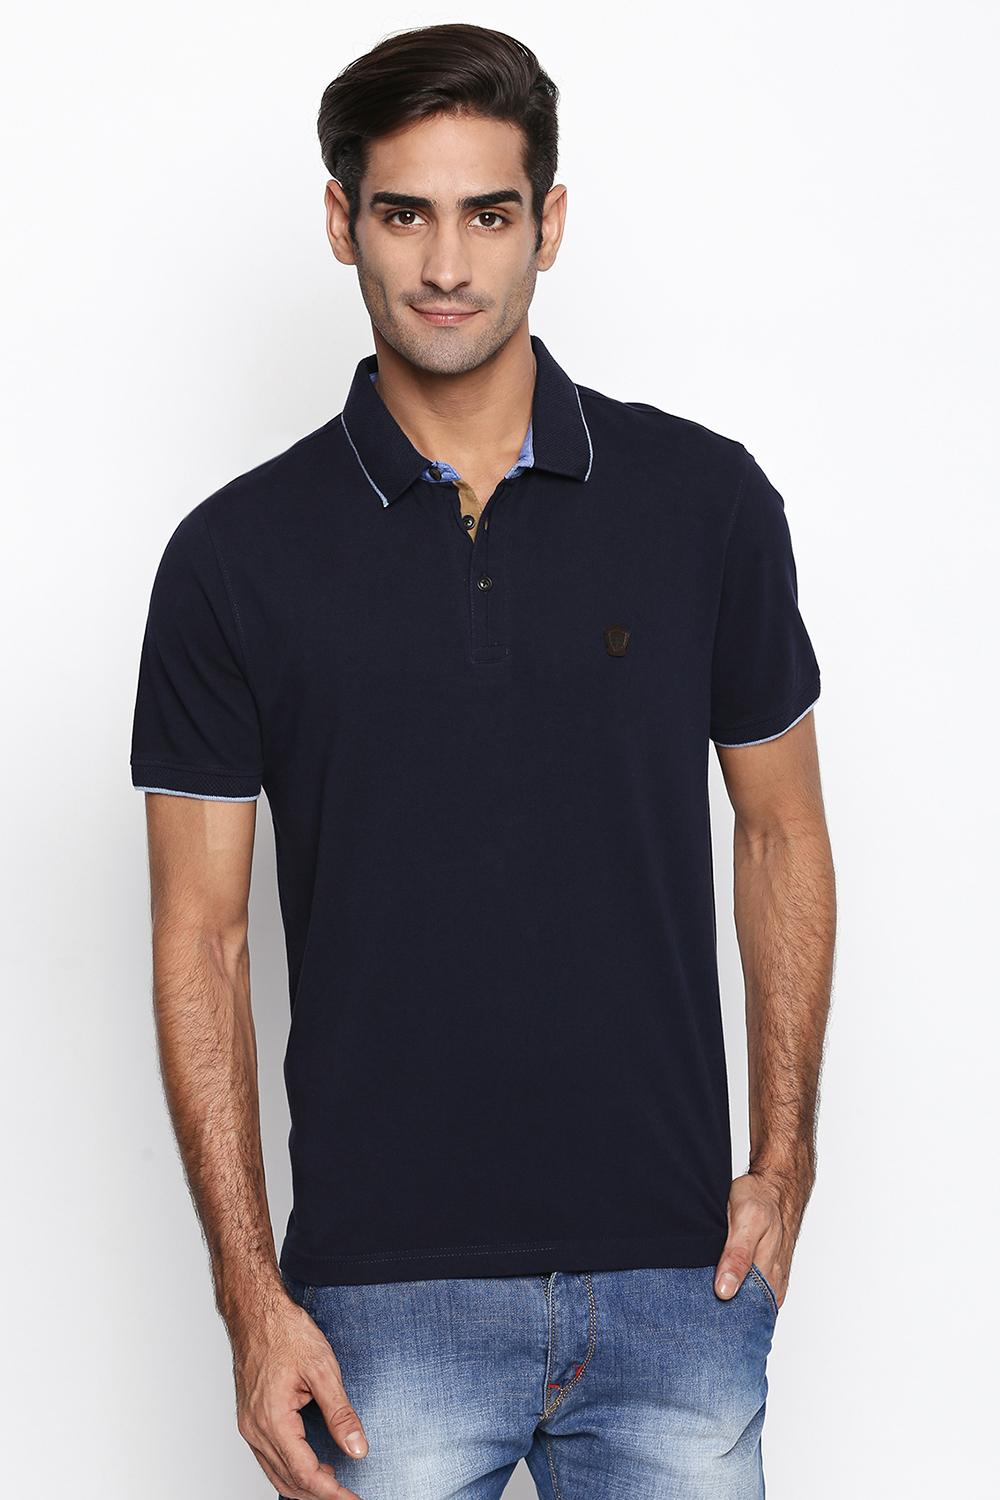 512c4106d139 Buy T Shirts for Men Online with Best Price in India